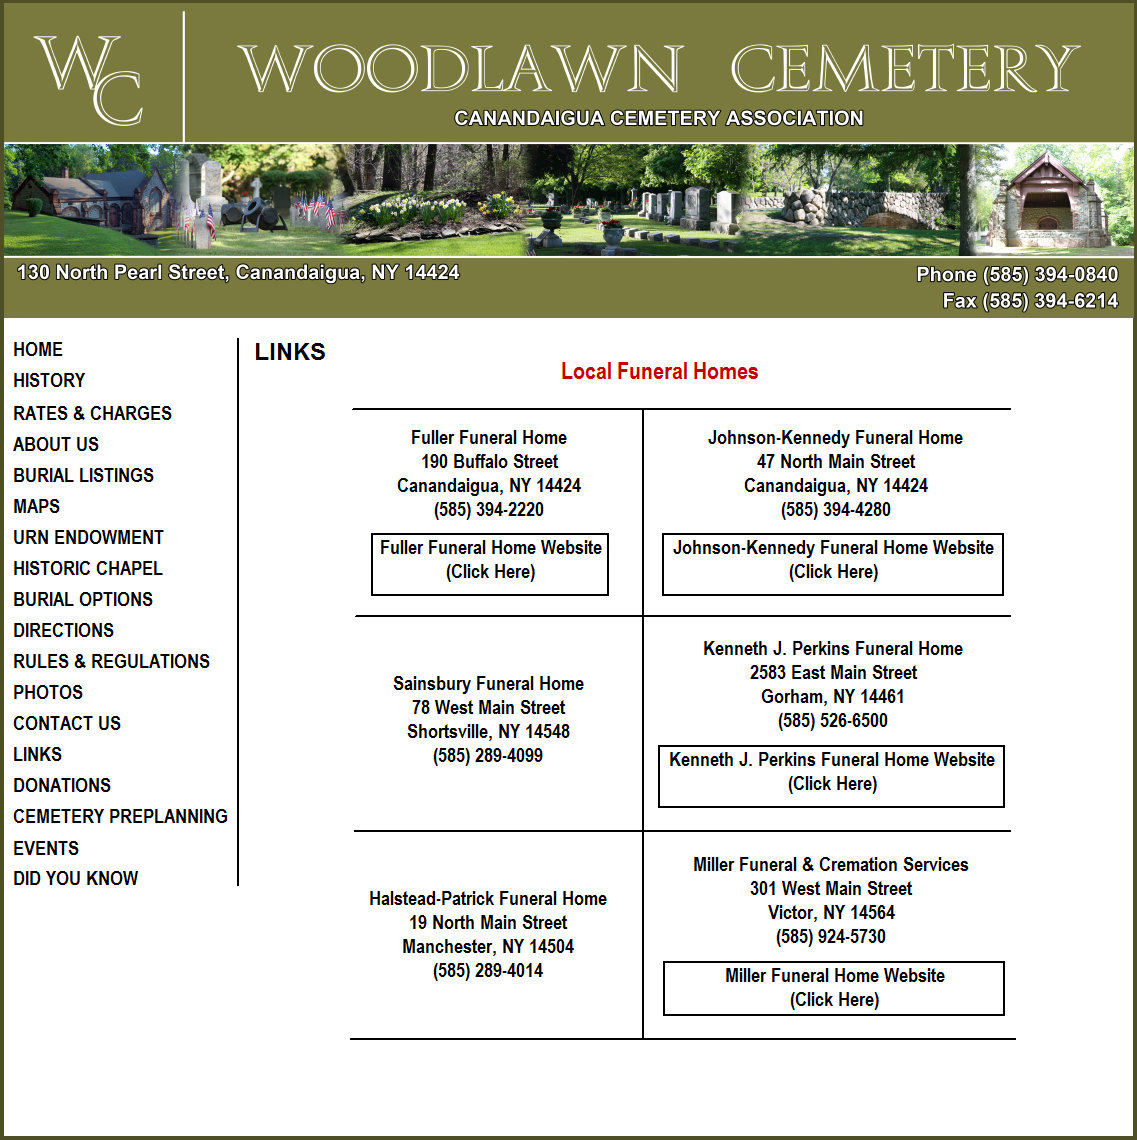 woodlawn_cemetery017001.jpg